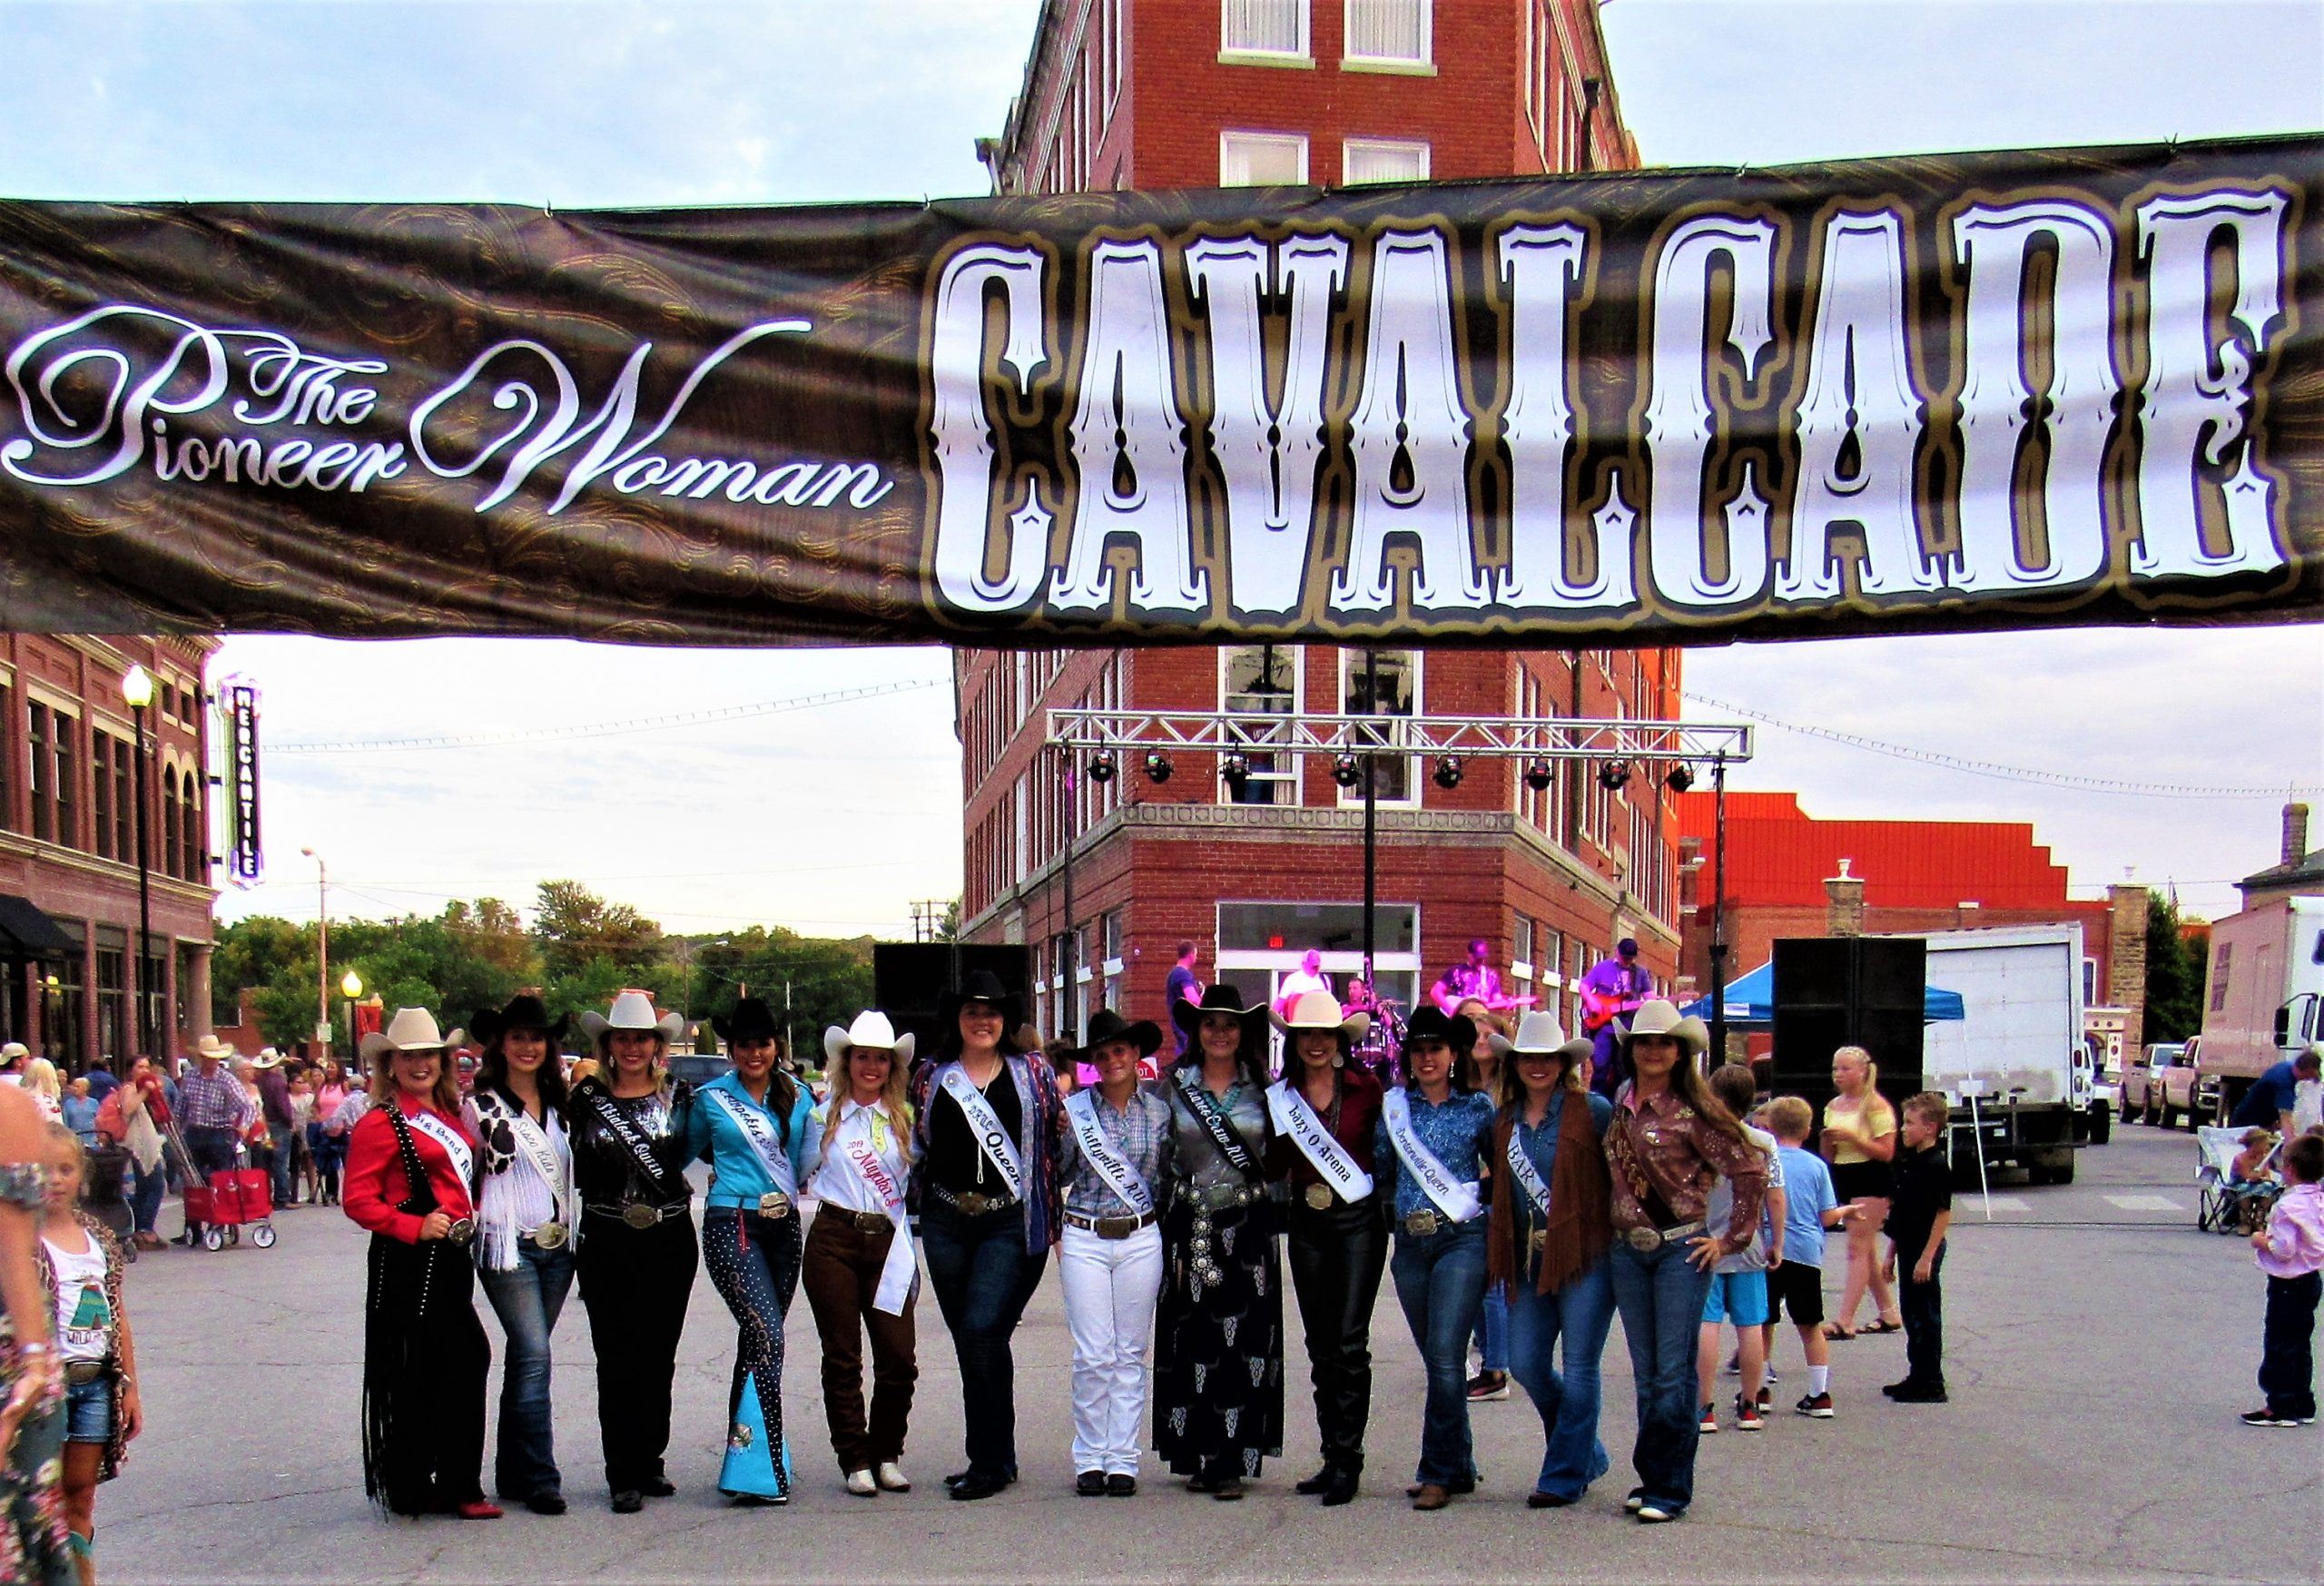 Cavalcade Rodeo banner hanging across the streets of Pawhuska with rodeo queens in cowboy hats under it on the streets